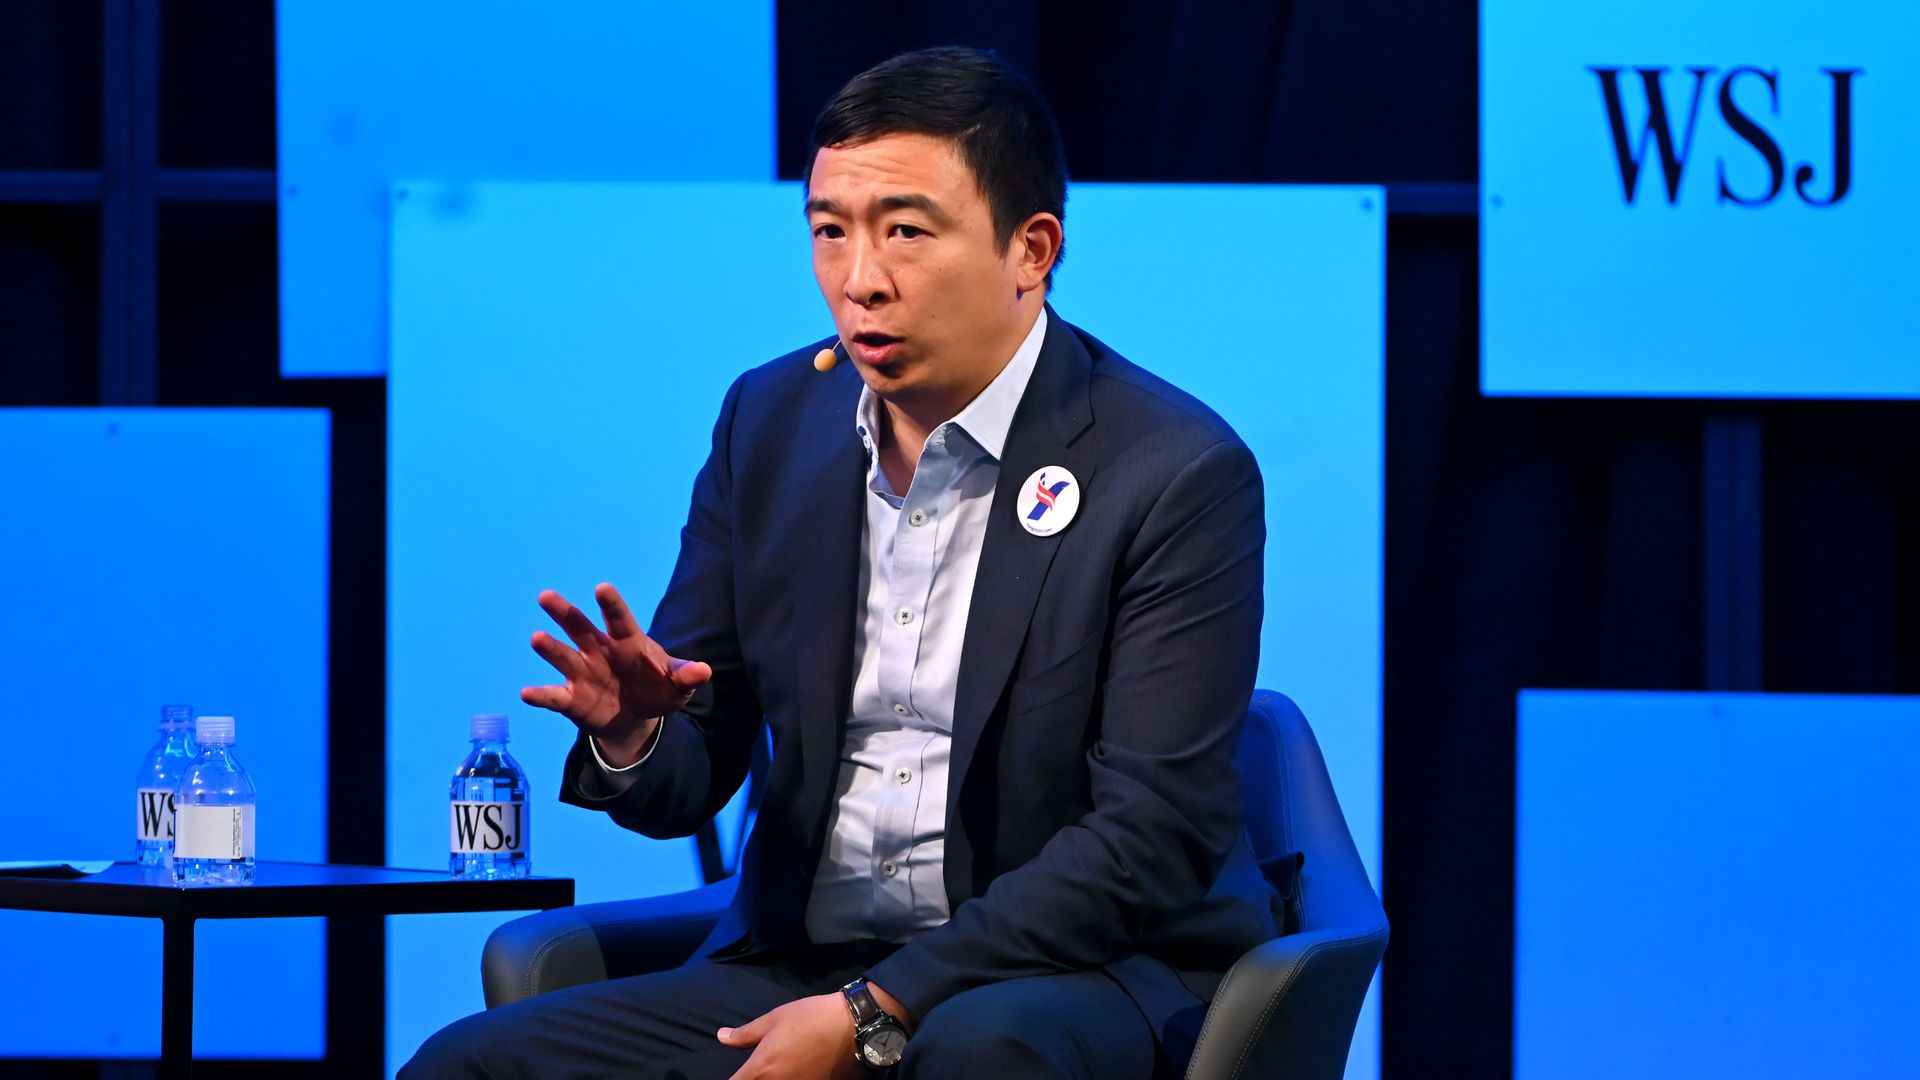 Andrew Yang sitting in a chair while extending his hand forward. he is wearing a suit, Yang button and in front of some Wall Street Journal graphics.